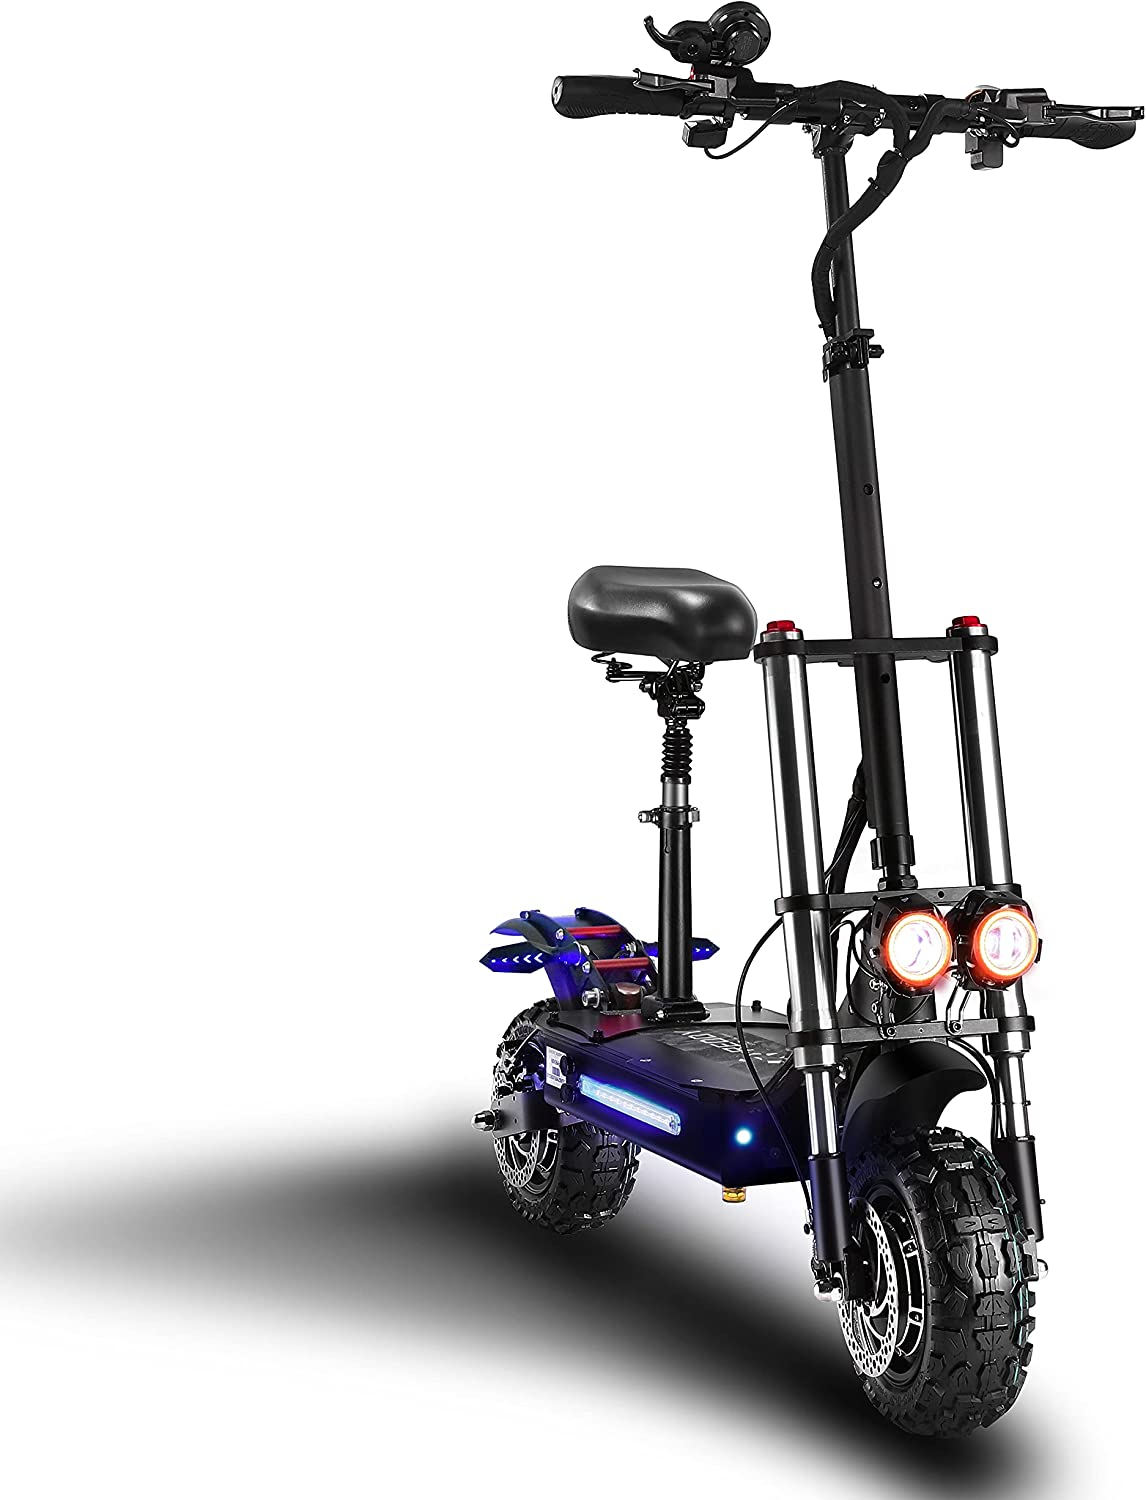 ReddyRD1 Electric Scooter Max Speed Total Power 6000W 60MPH 与え 65 限定モデル